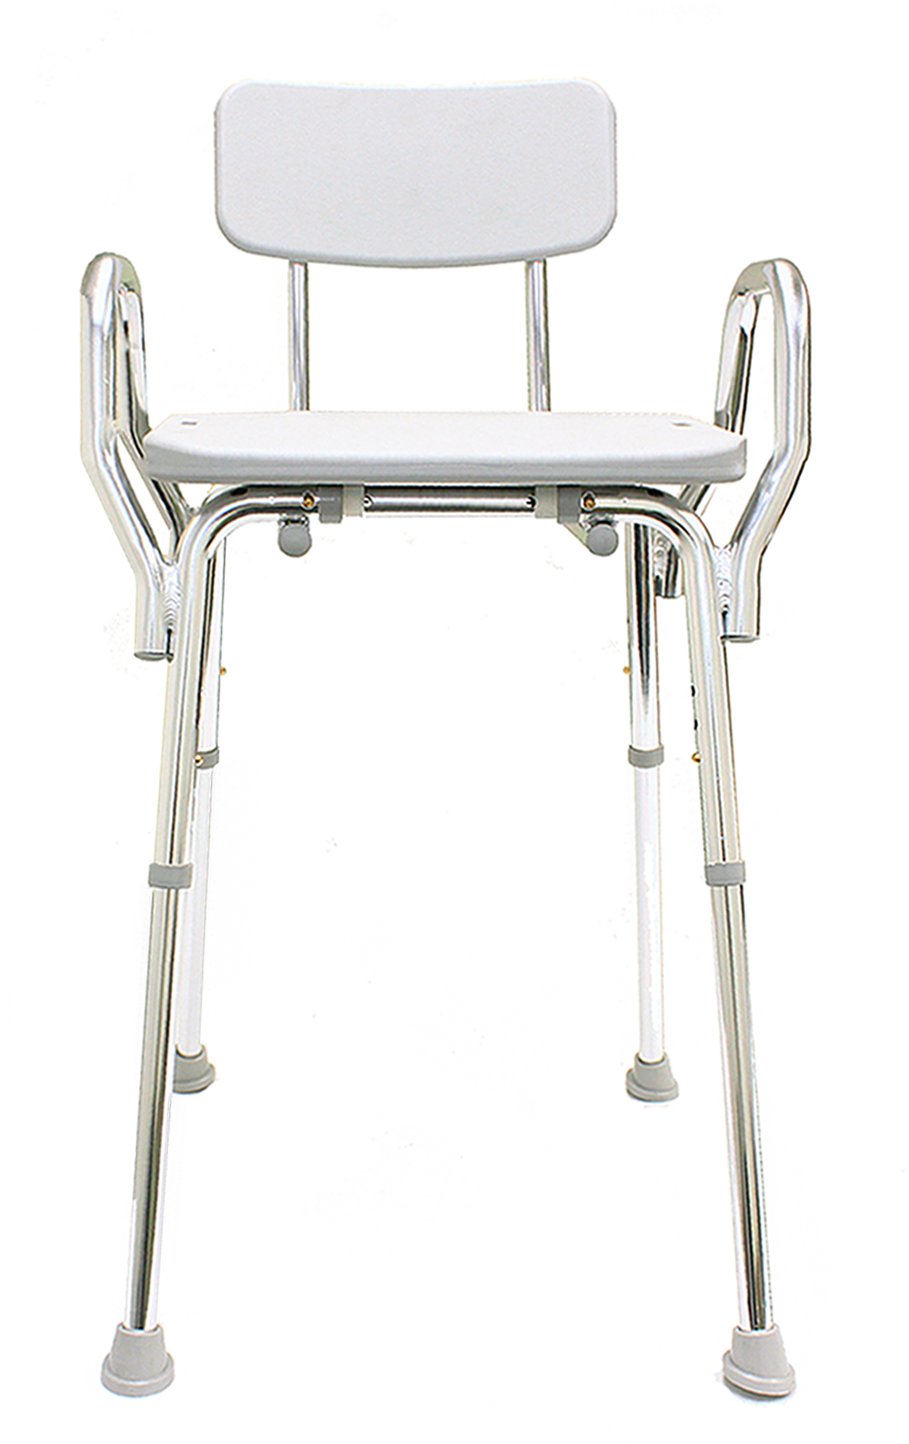 73231 - Hip Chair - Eagle Health Supplies